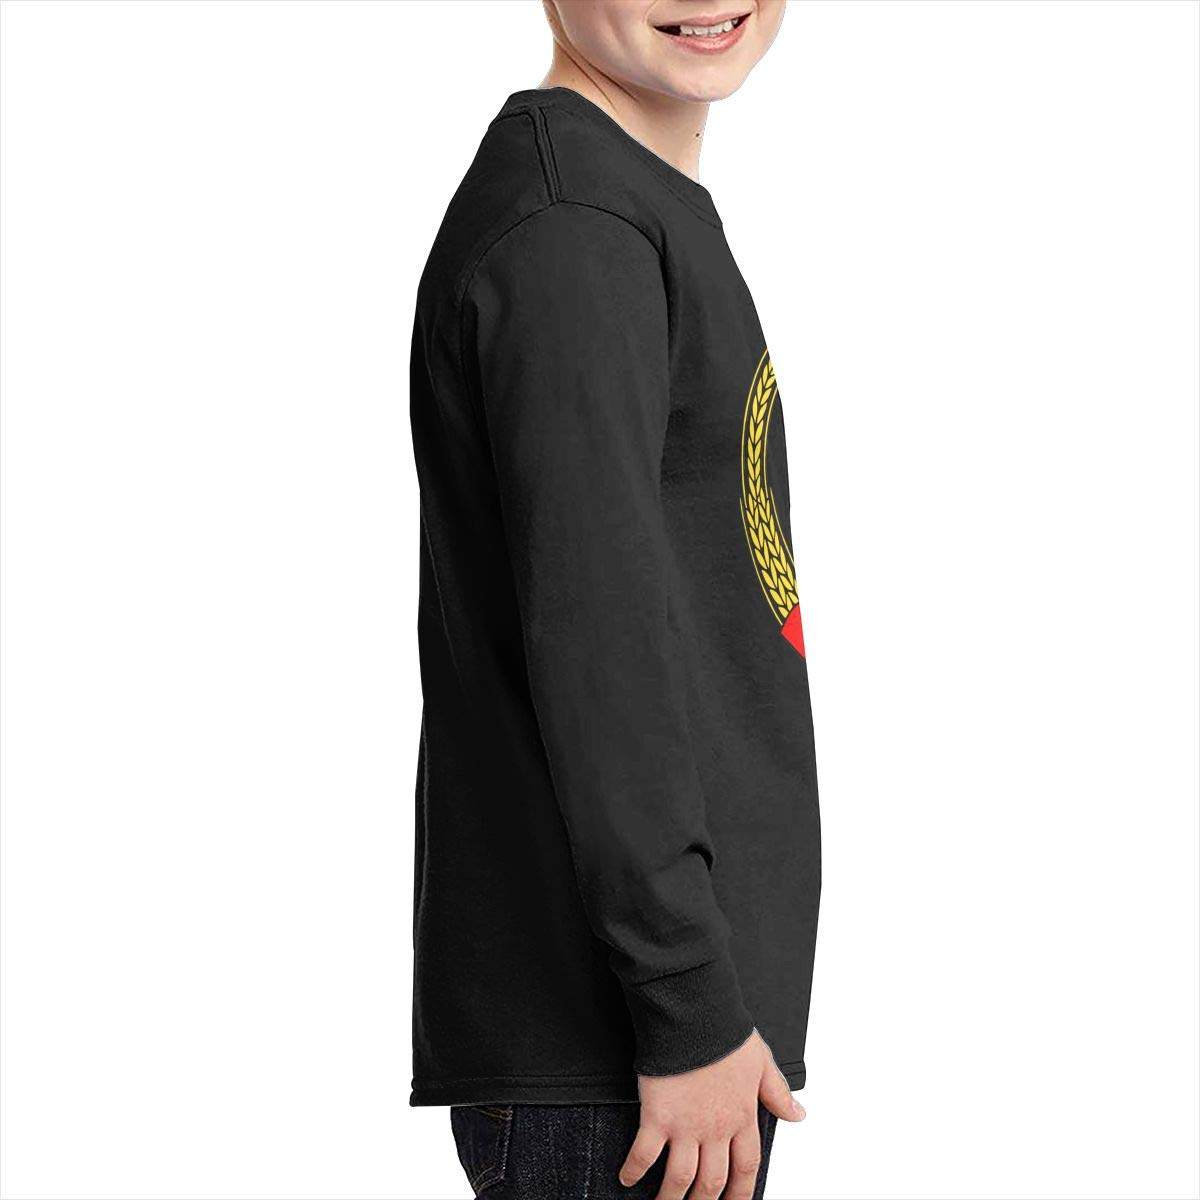 X-JUSEN Teenagers Coat of Arms of Albania National Emblem Long Sleeve Cotton T-Shirts Blouse Tee Top